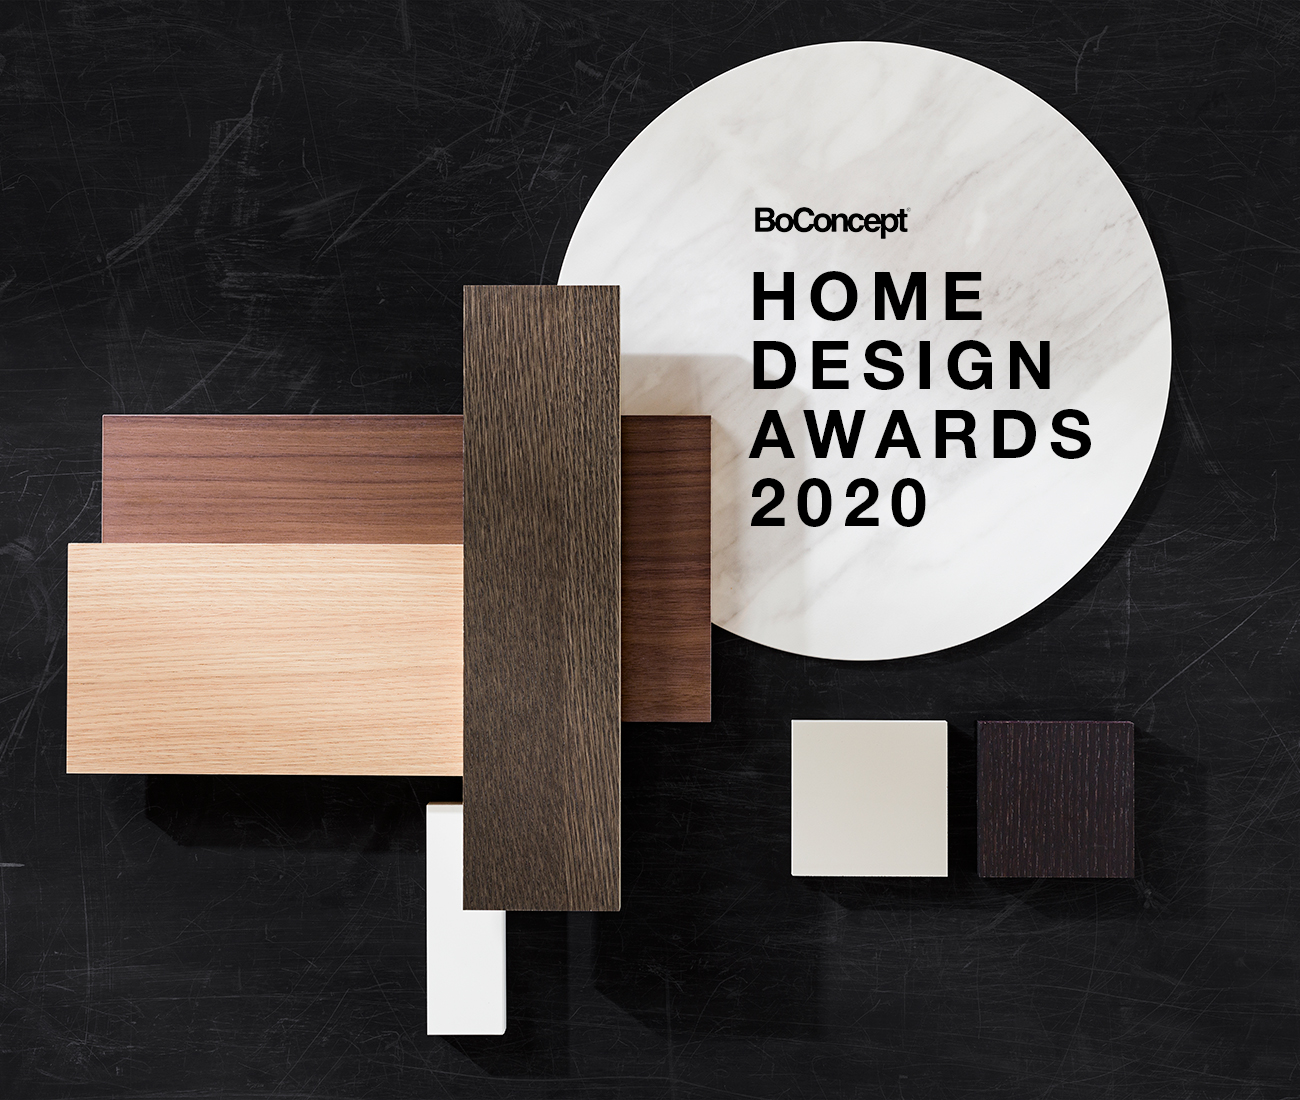 HOME DESIGN AWARDS 2020